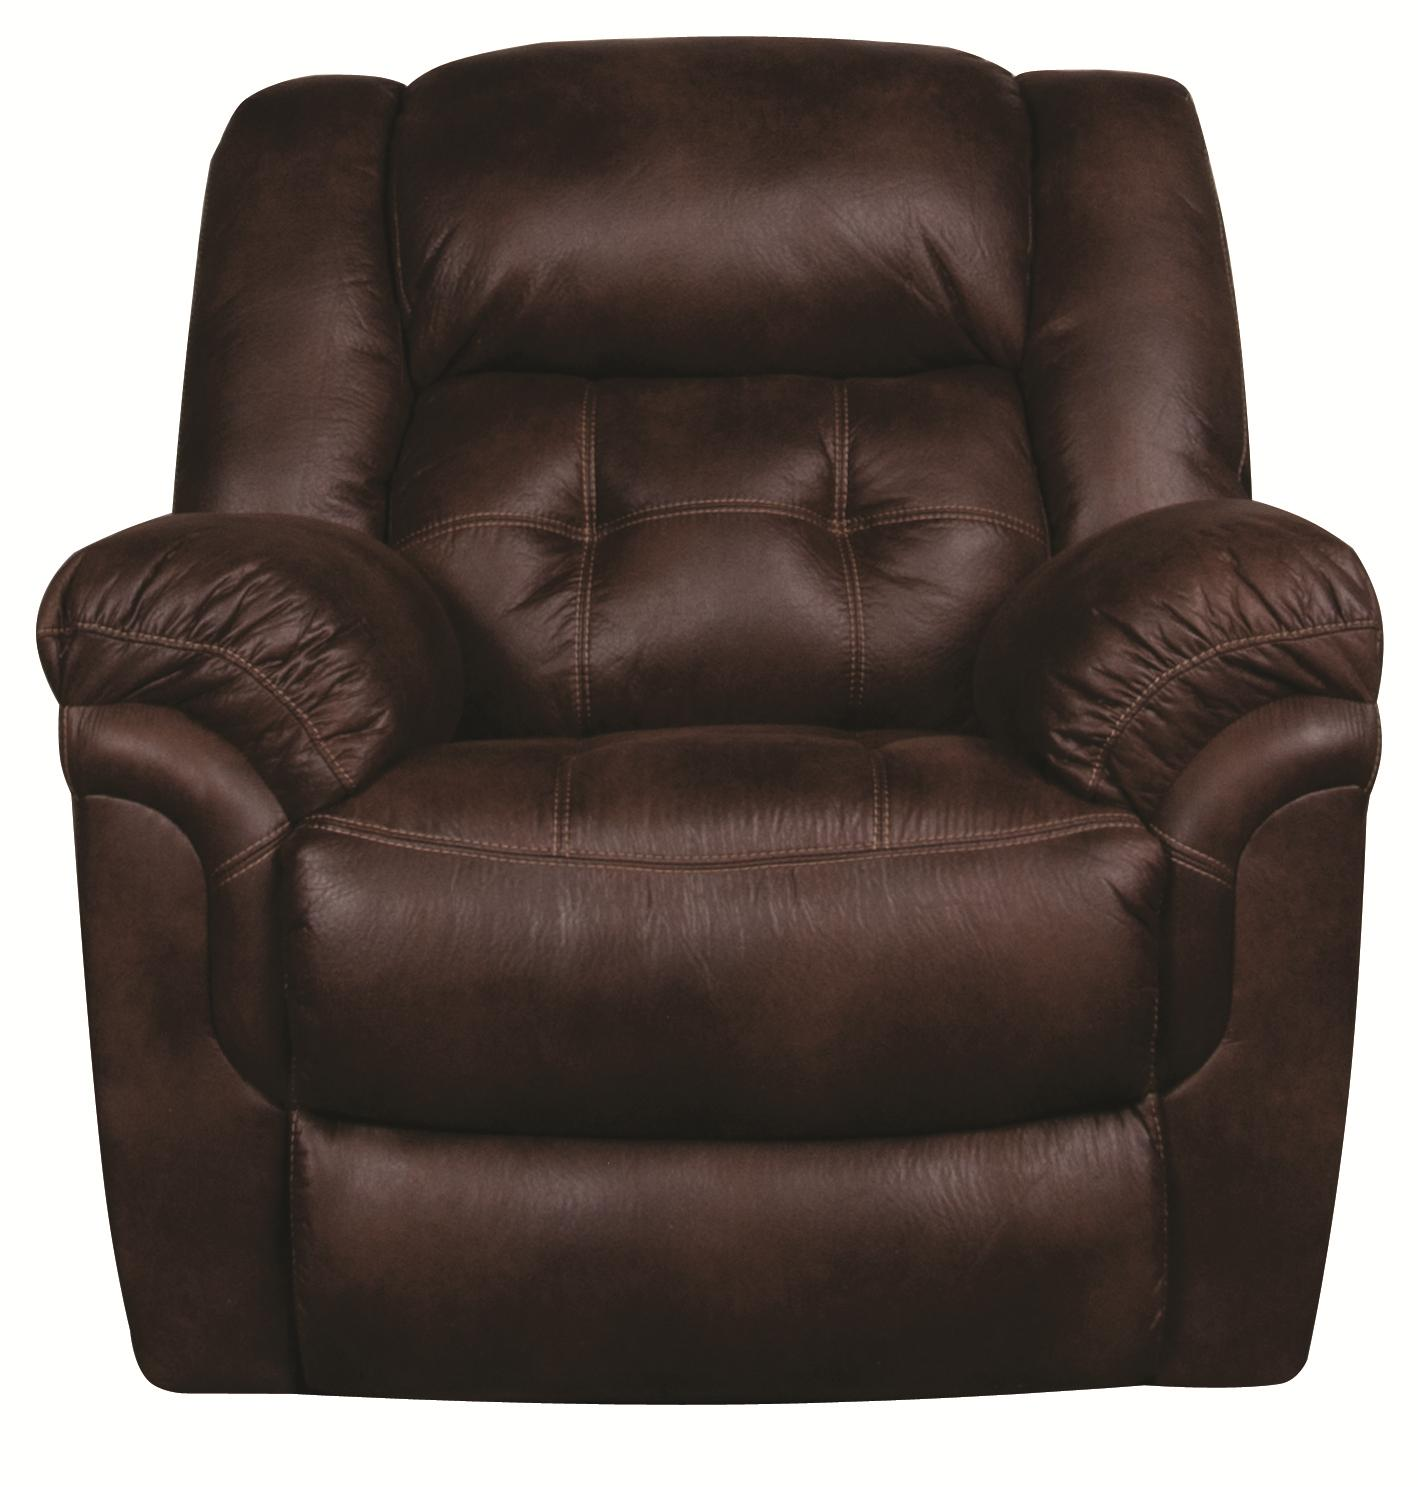 Morris Home Furnishings Elijah Elijah Power Rocker Recliner - Item Number: 108843067